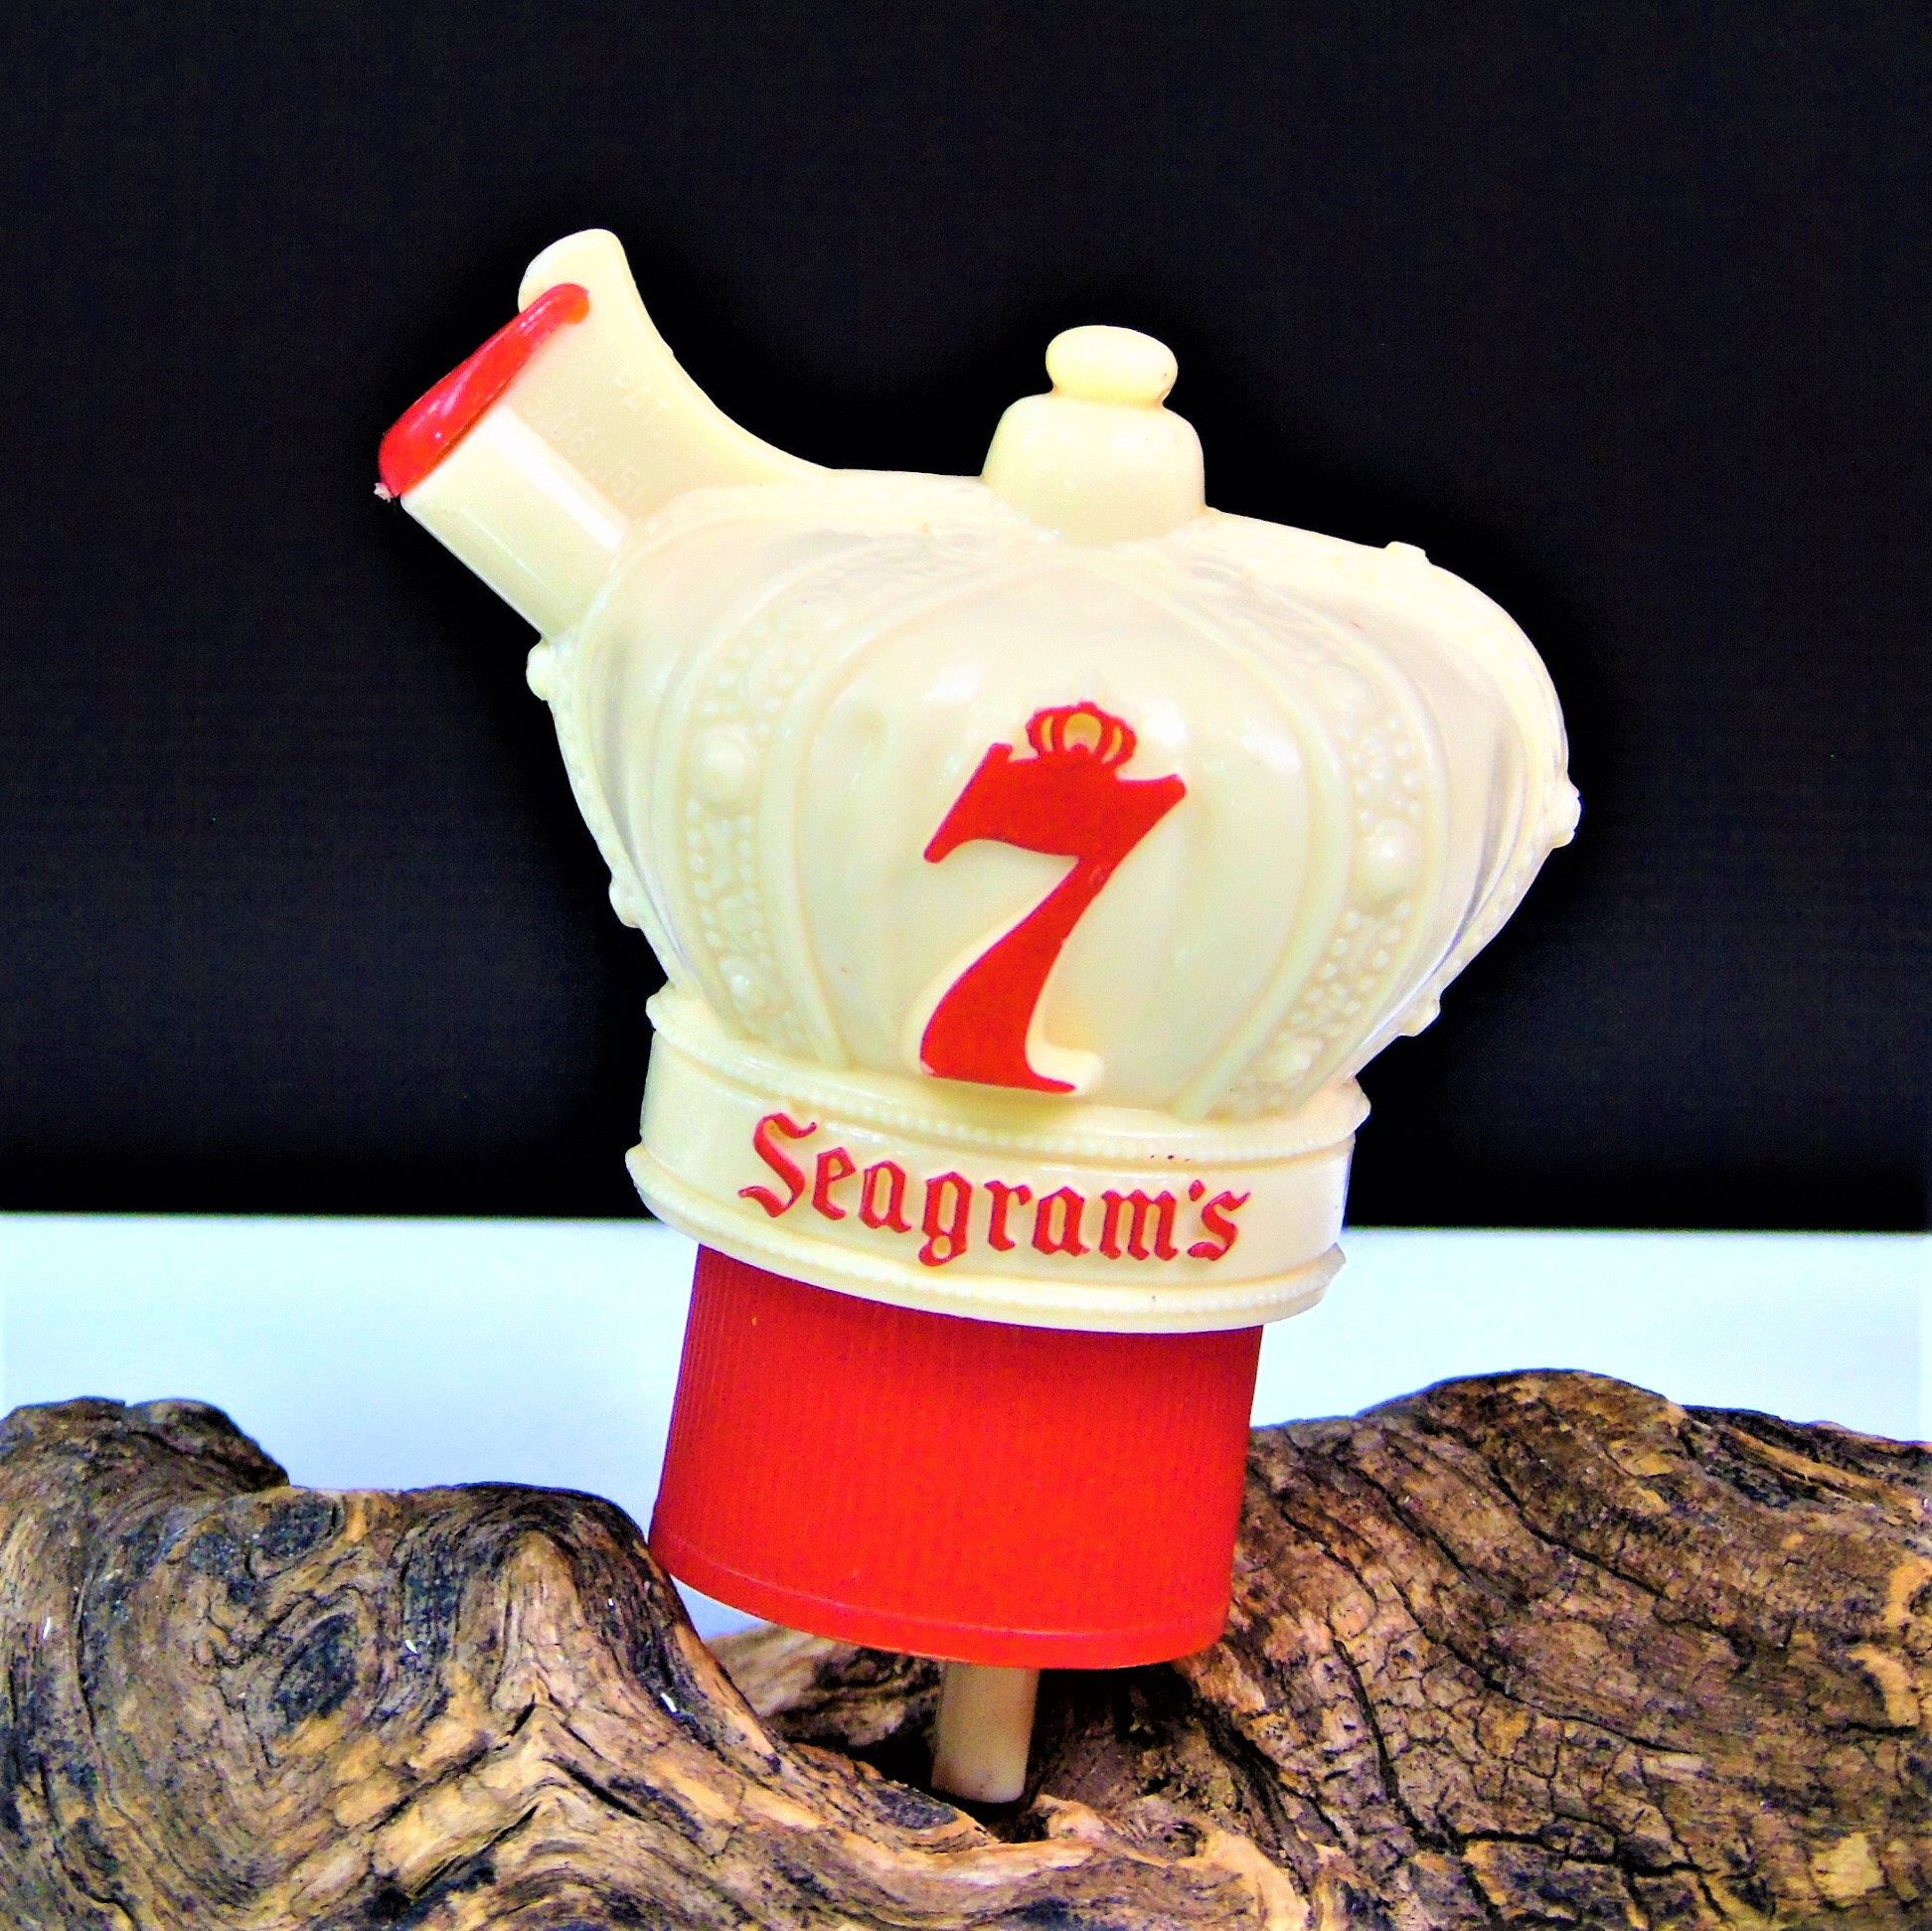 Vintage Seagram S Seven 7 Crown Shaped Whiskey Bottle Stopper Pour Spout Dispenser By 777vintagestreet On Etsy Https In 2020 Bottle Stoppers Whiskey Bottle Seagrams 7